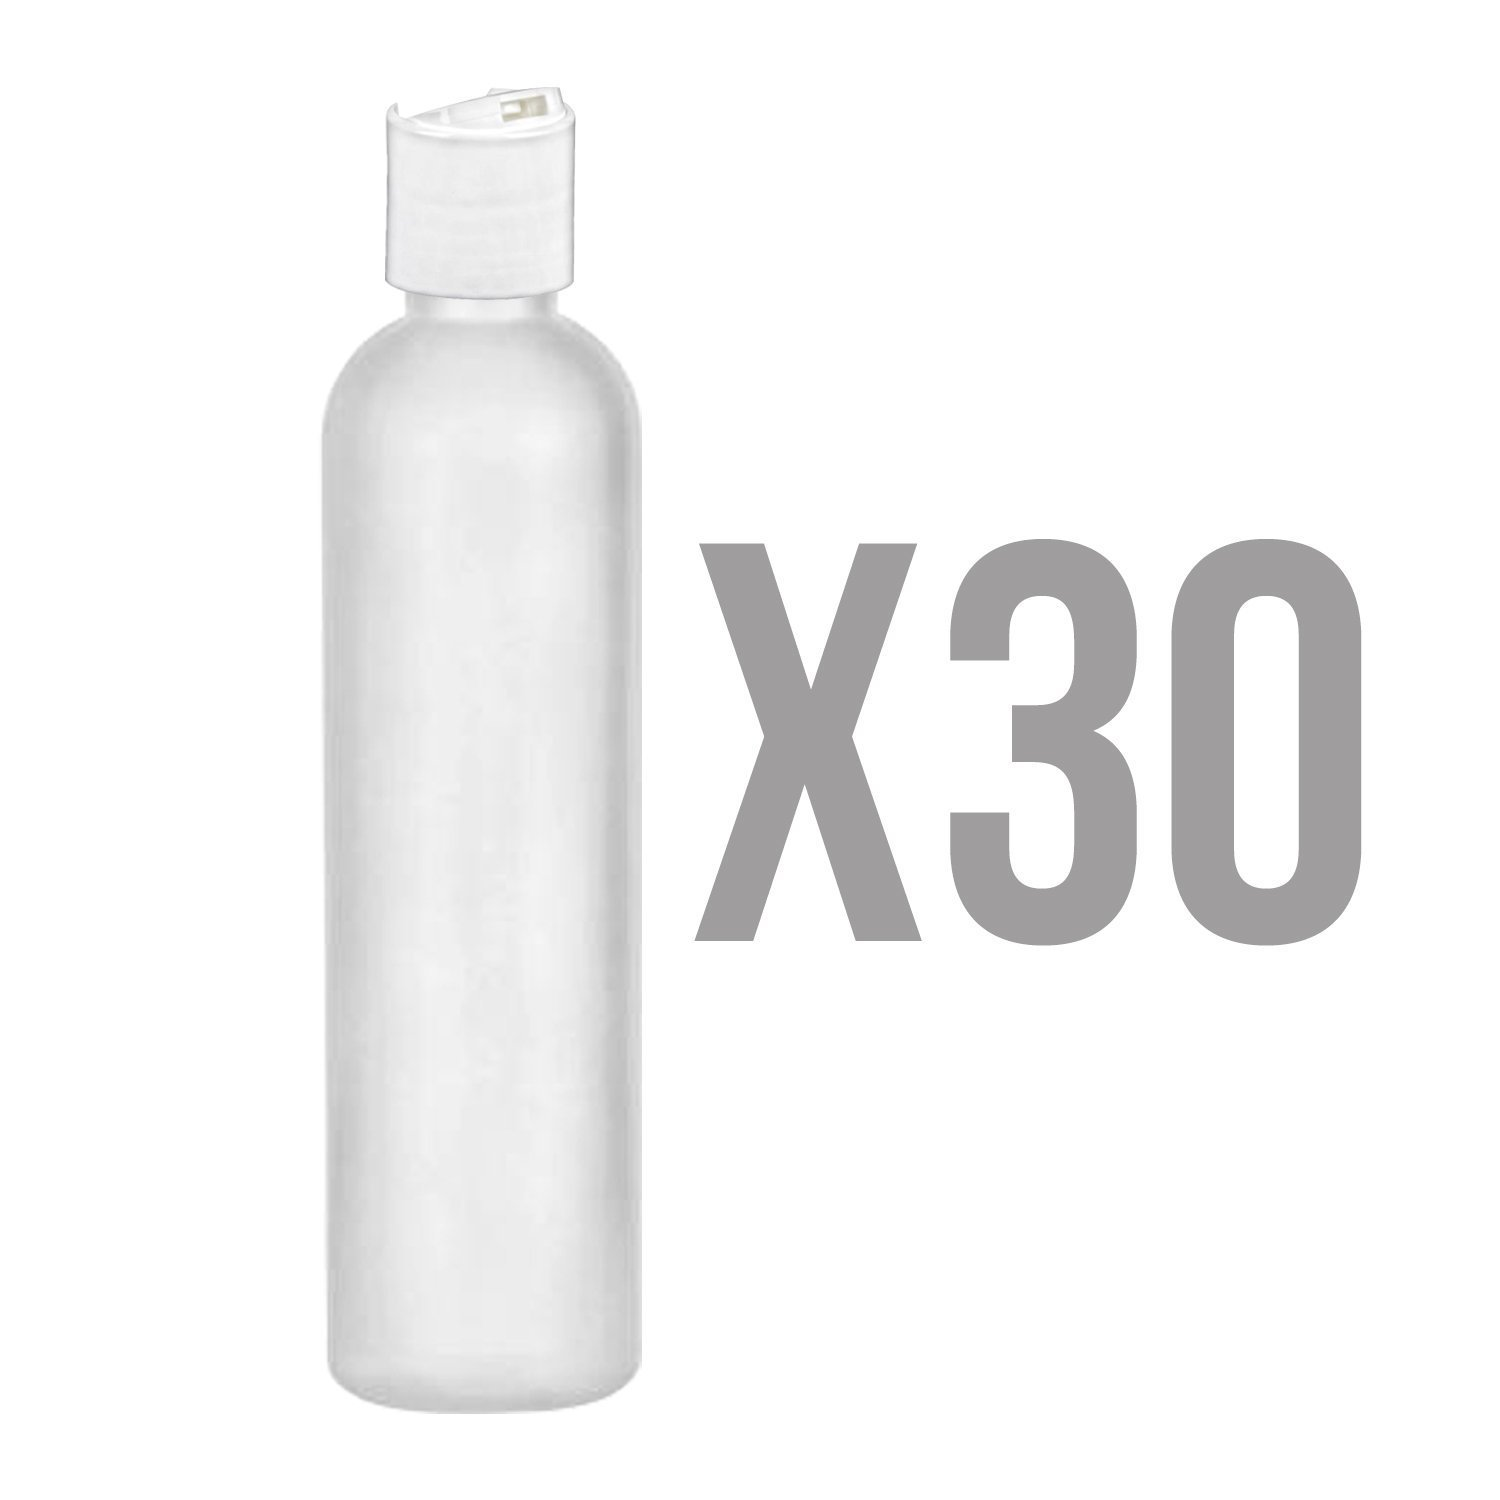 MoYo Natural Labs 4 oz Travel Bottles, Empty Travel Containers with Disc Caps, BPA Free HDPE Plastic Squeezable Toiletry/Cosmetic Bottle (Neck 20-410) (Pack of 30, HDPE Translucent White)